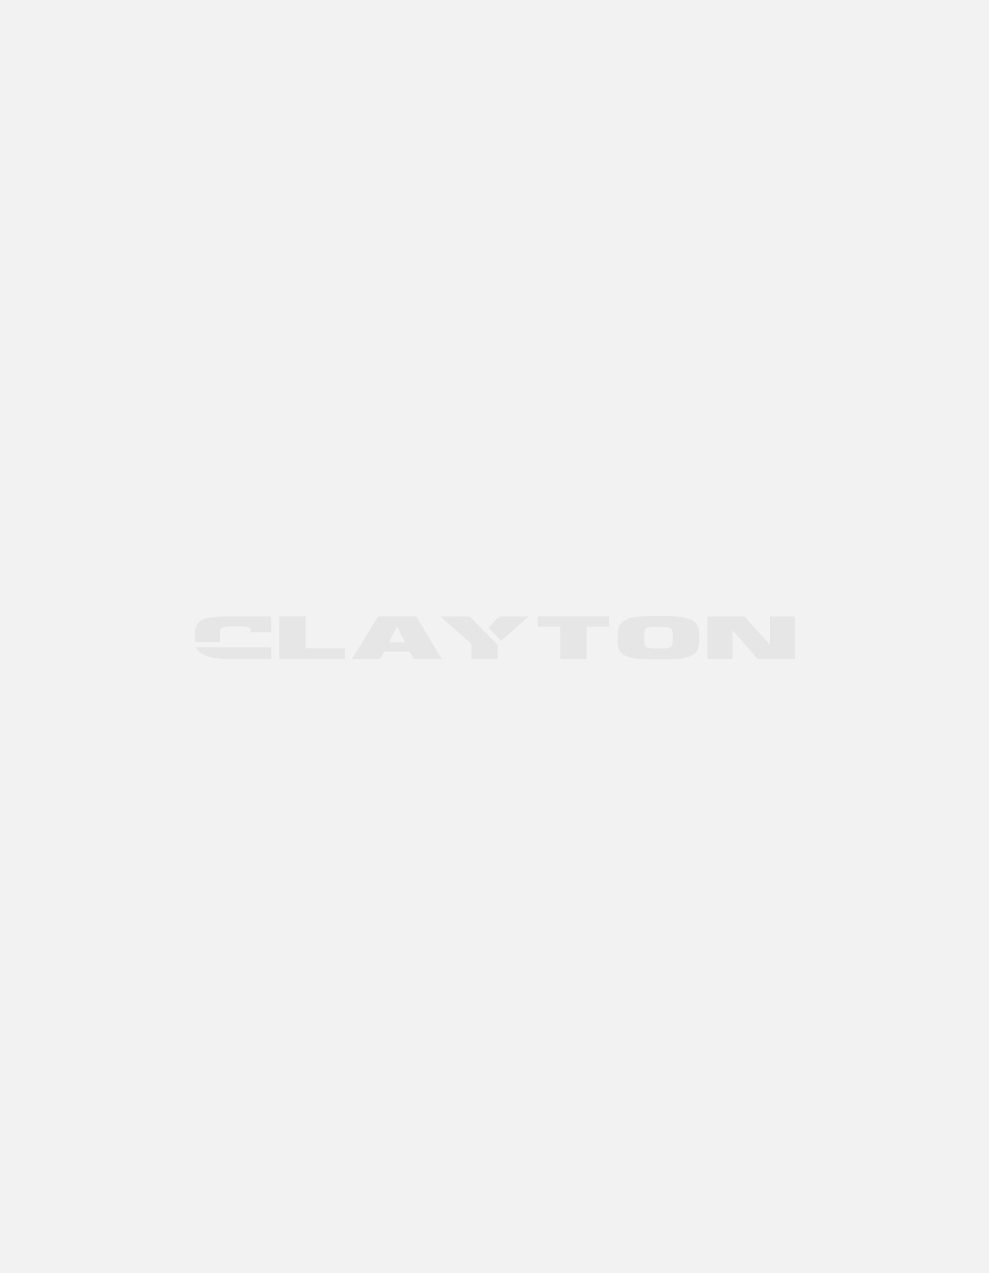 Men's shirt with stand up collar and contrasting color hem